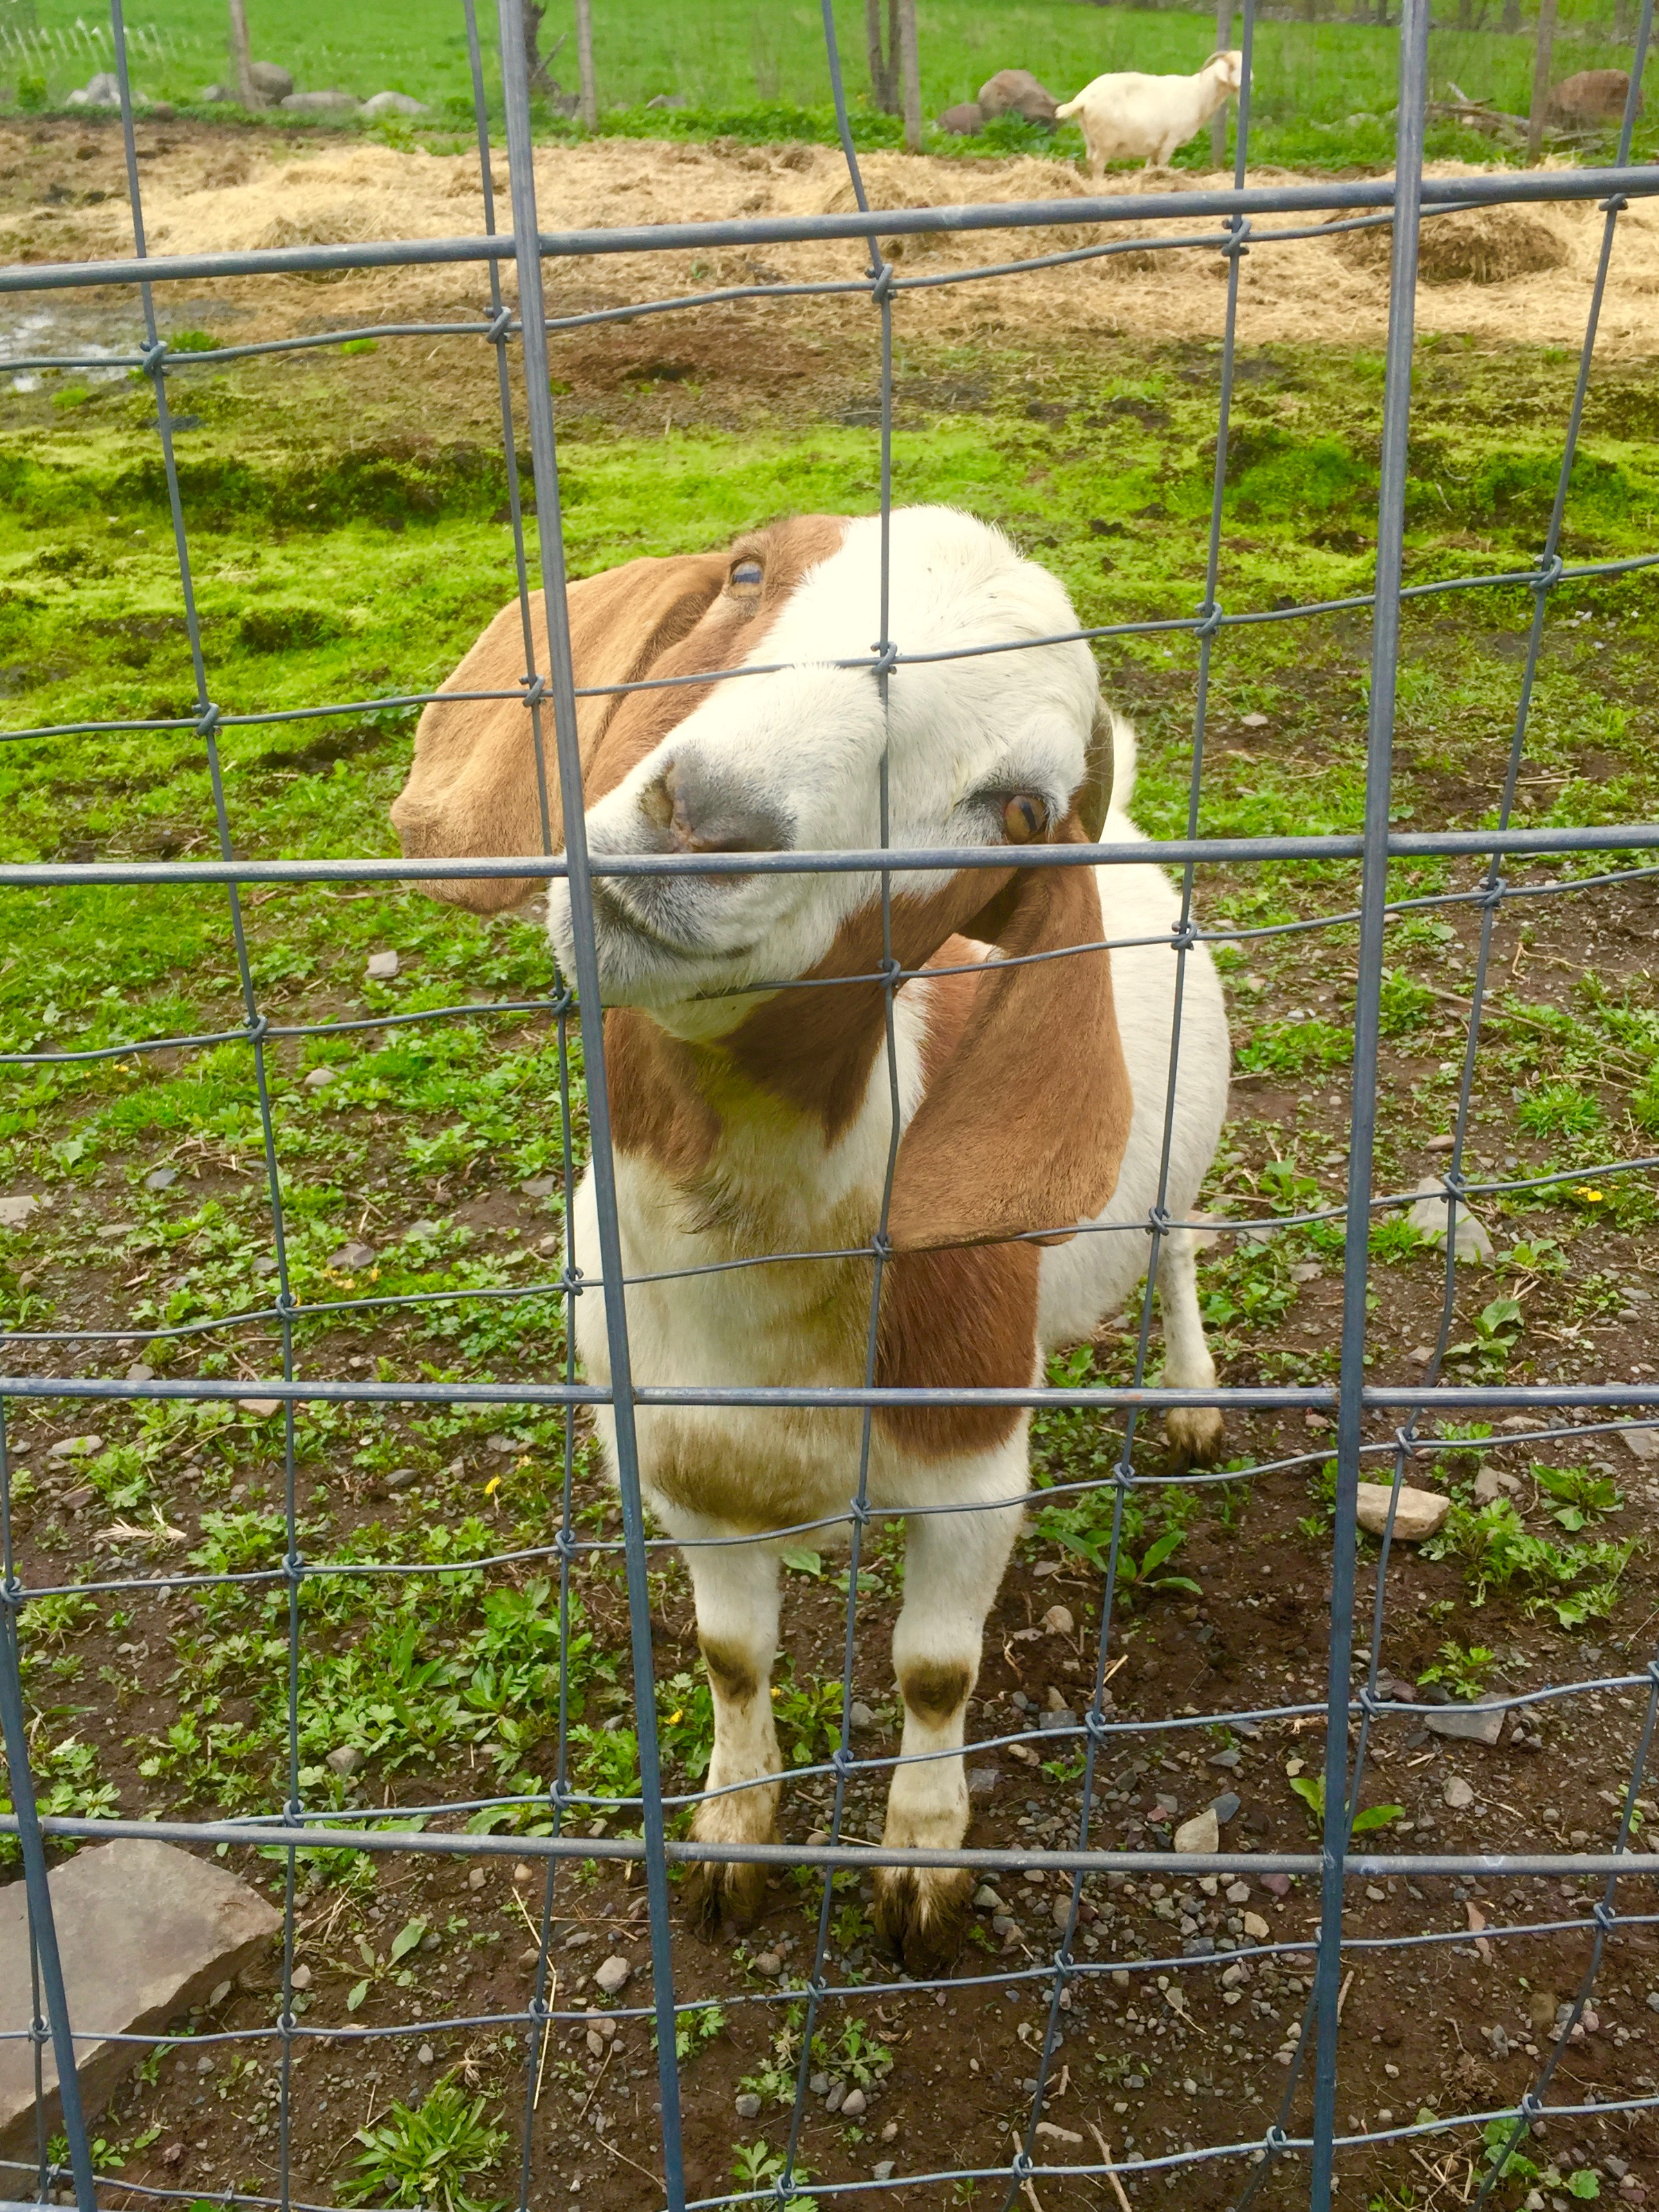 I love goats, too. This farm visit and brunch was the perfect early Mother's Day gift for me.